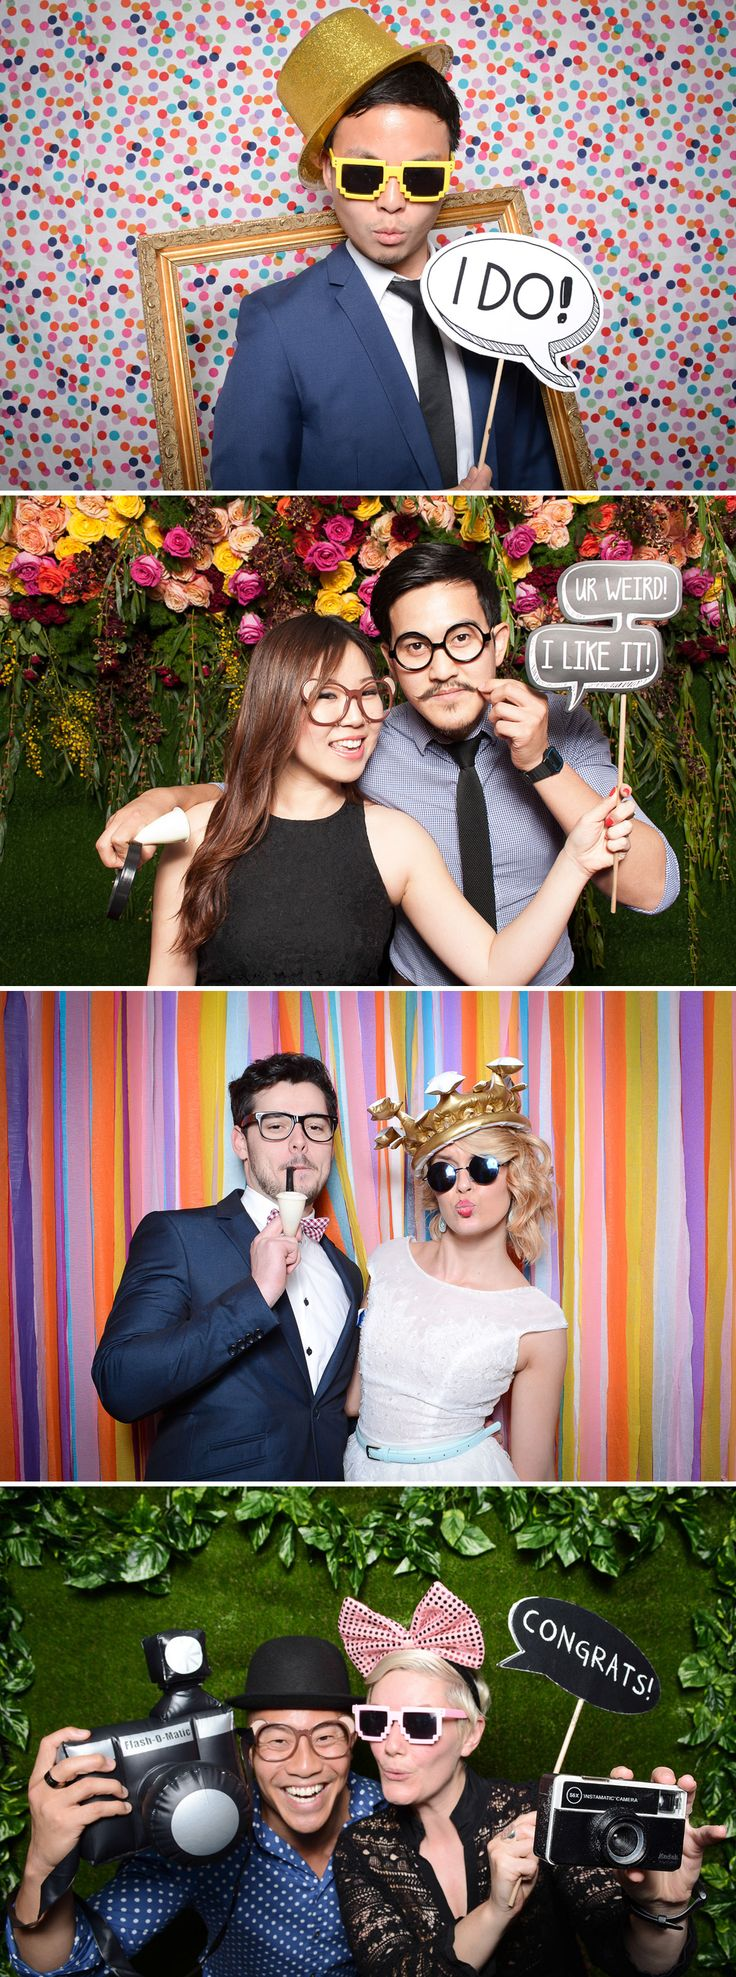 Fun photobooth props and backdrops from Sydney's Photo Corner